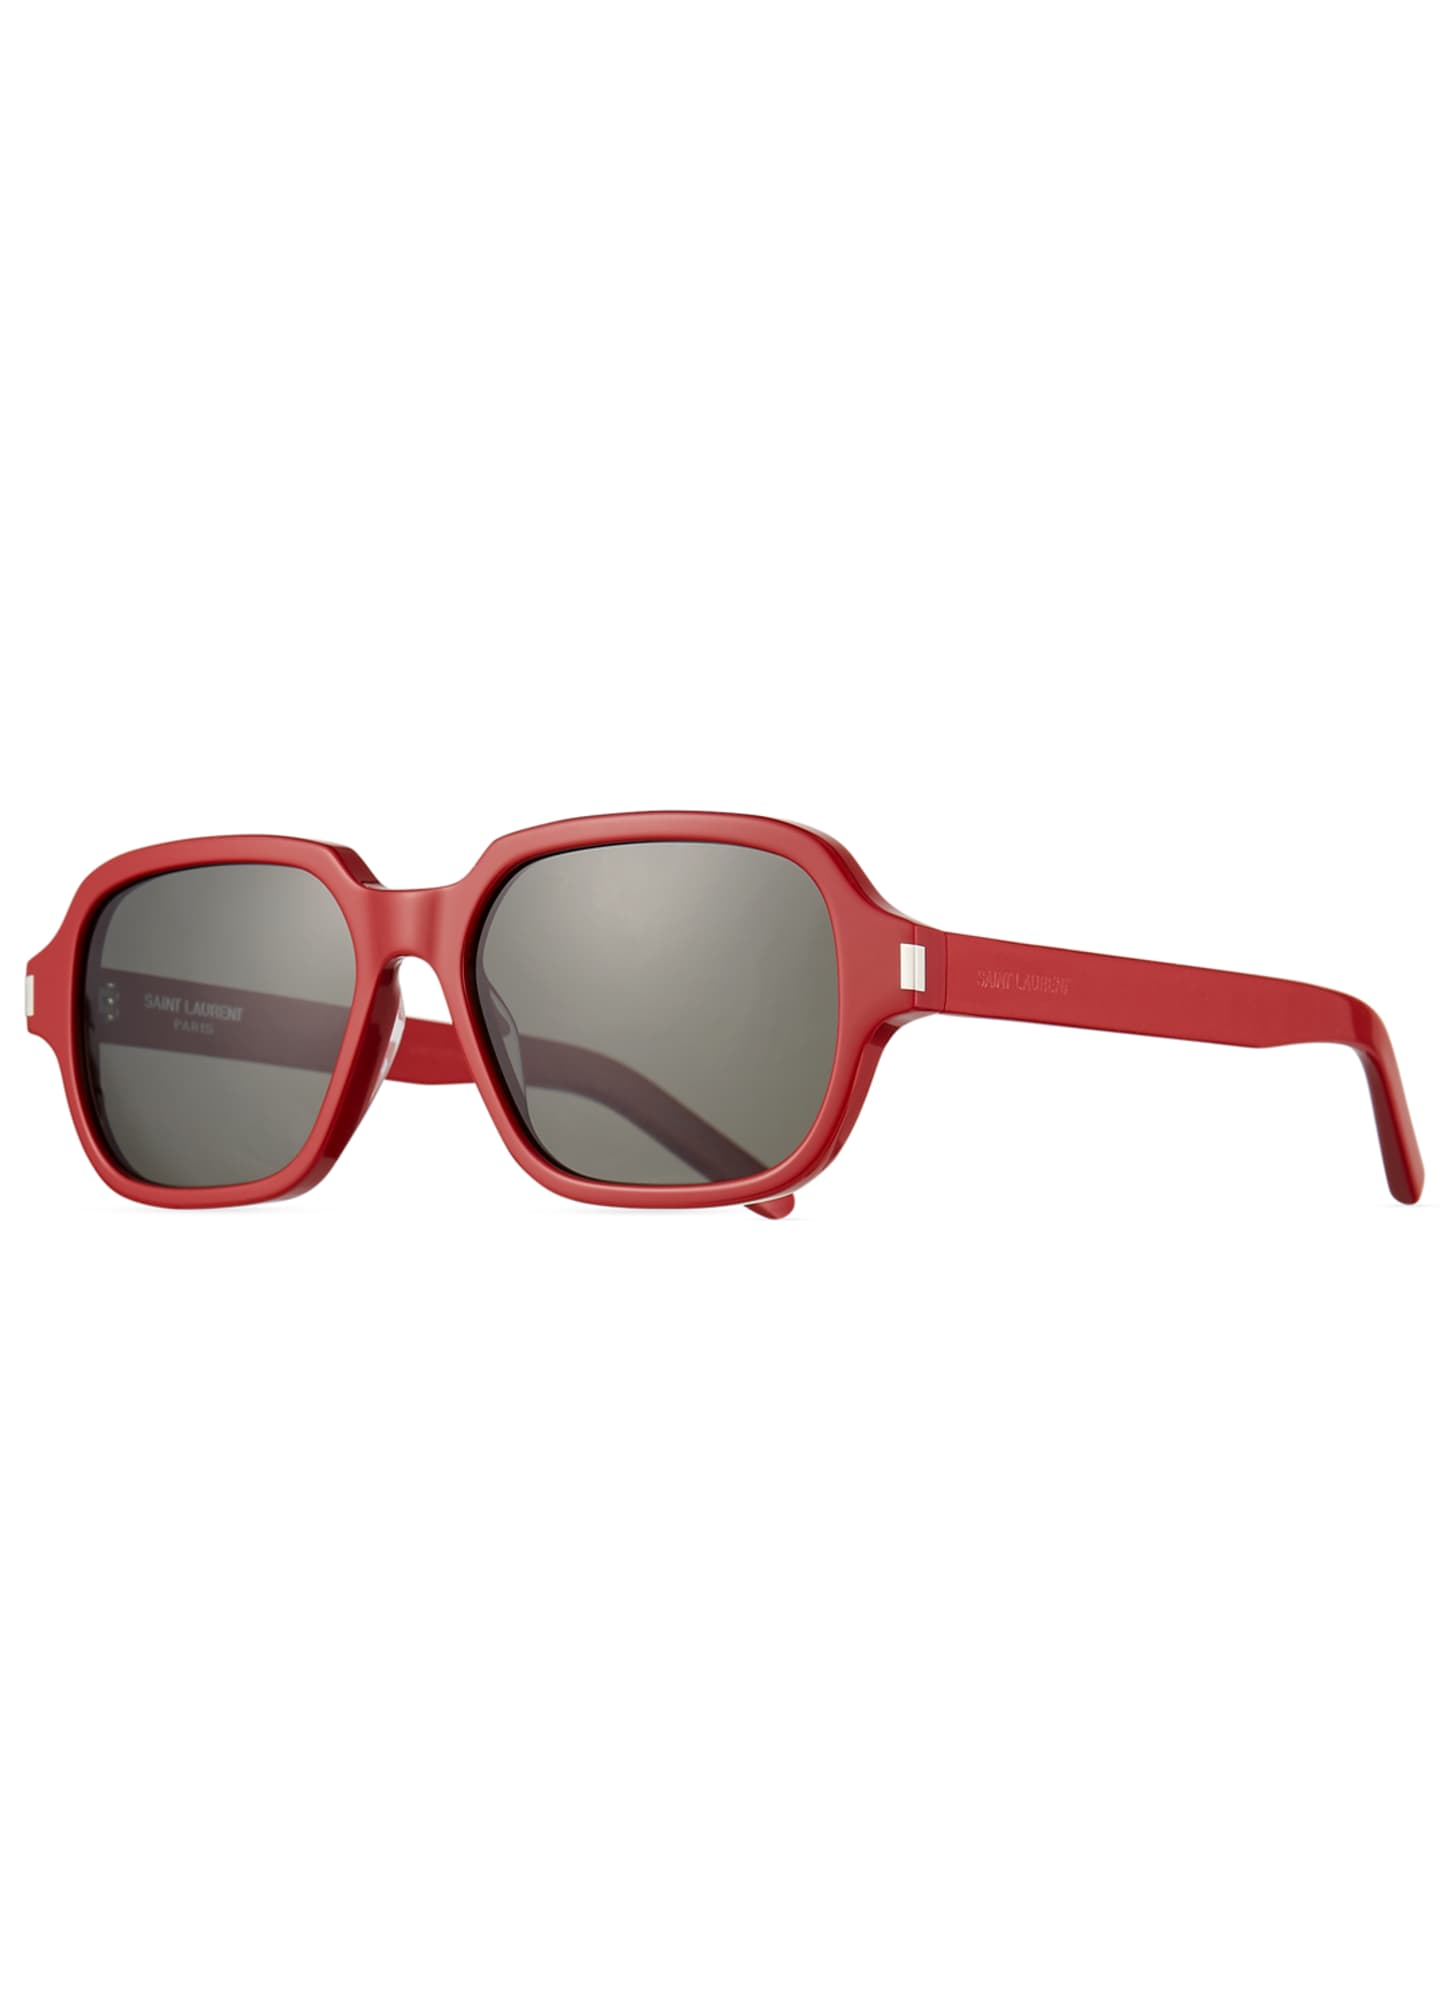 Image 1 of 3: Men's SL 292 Rectangle Acetate Sunglasses